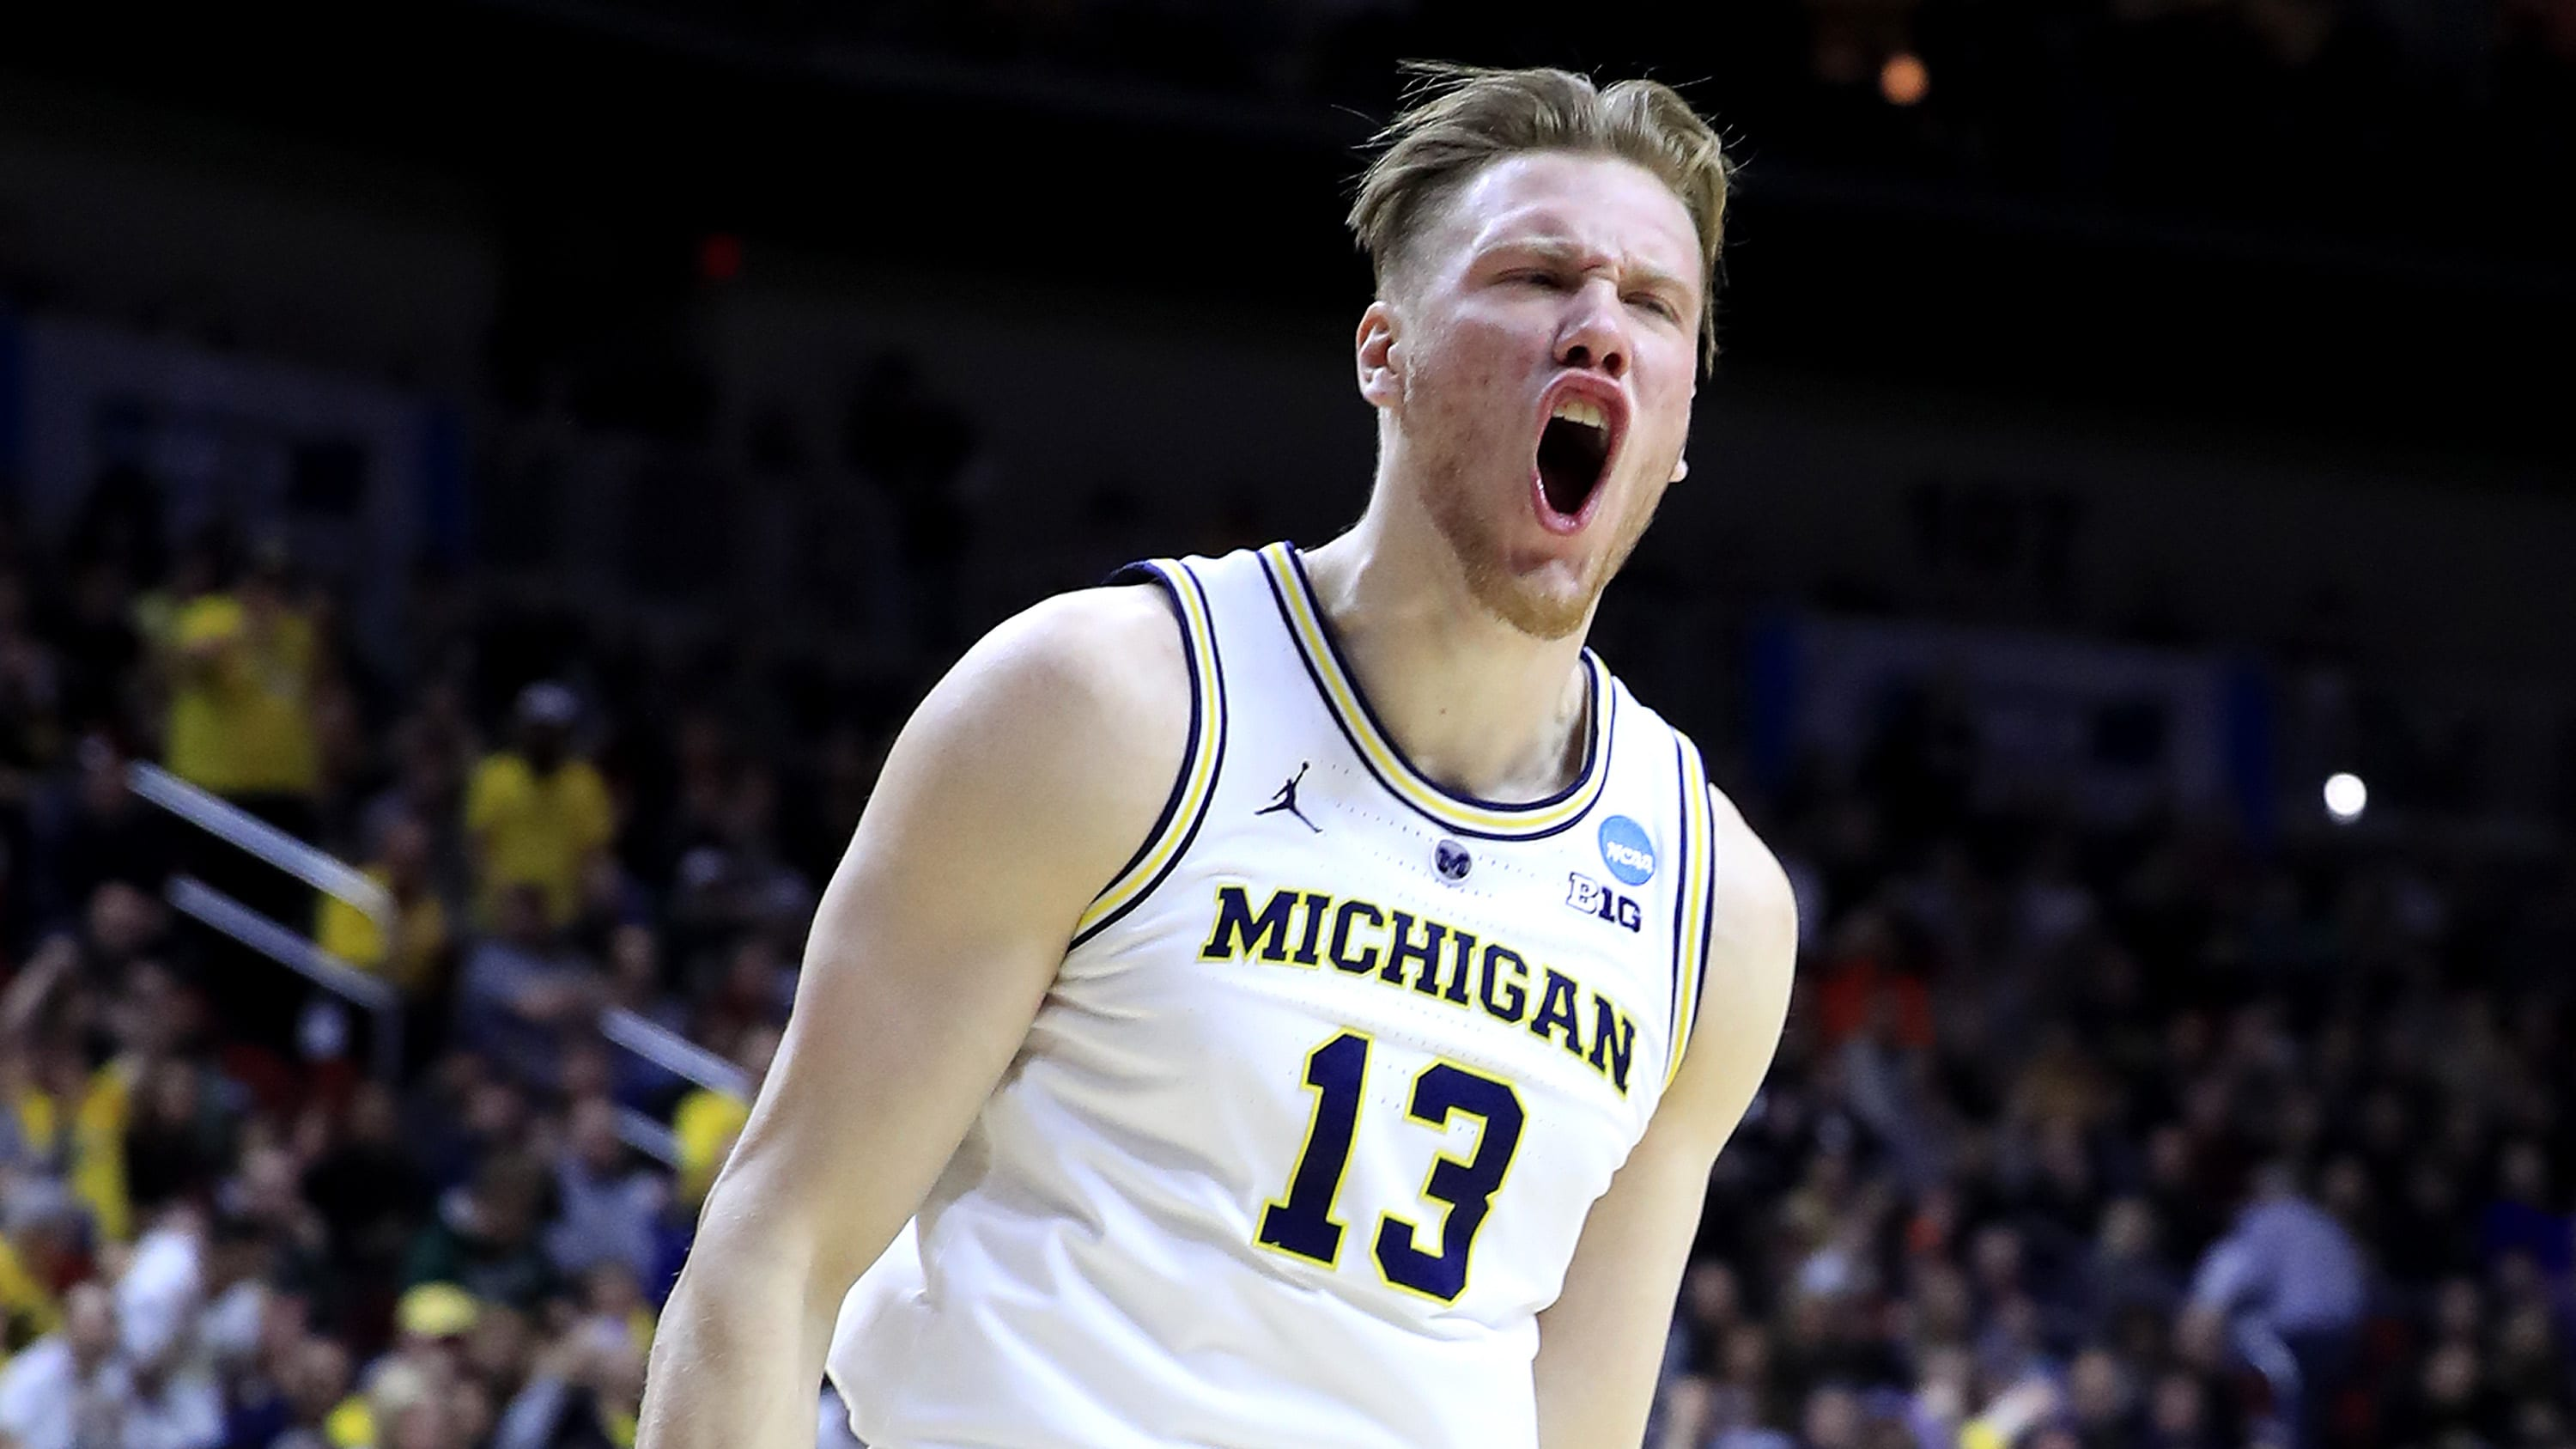 DES MOINES, IOWA - MARCH 23: Ignas Brazdeikis #13 of the Michigan Wolverines reacts after a dunk against the Florida Gators during the first half in the second round game of the 2019 NCAA Men's Basketball Tournament at Wells Fargo Arena on March 23, 2019 in Des Moines, Iowa. (Photo by Andy Lyons/Getty Images)